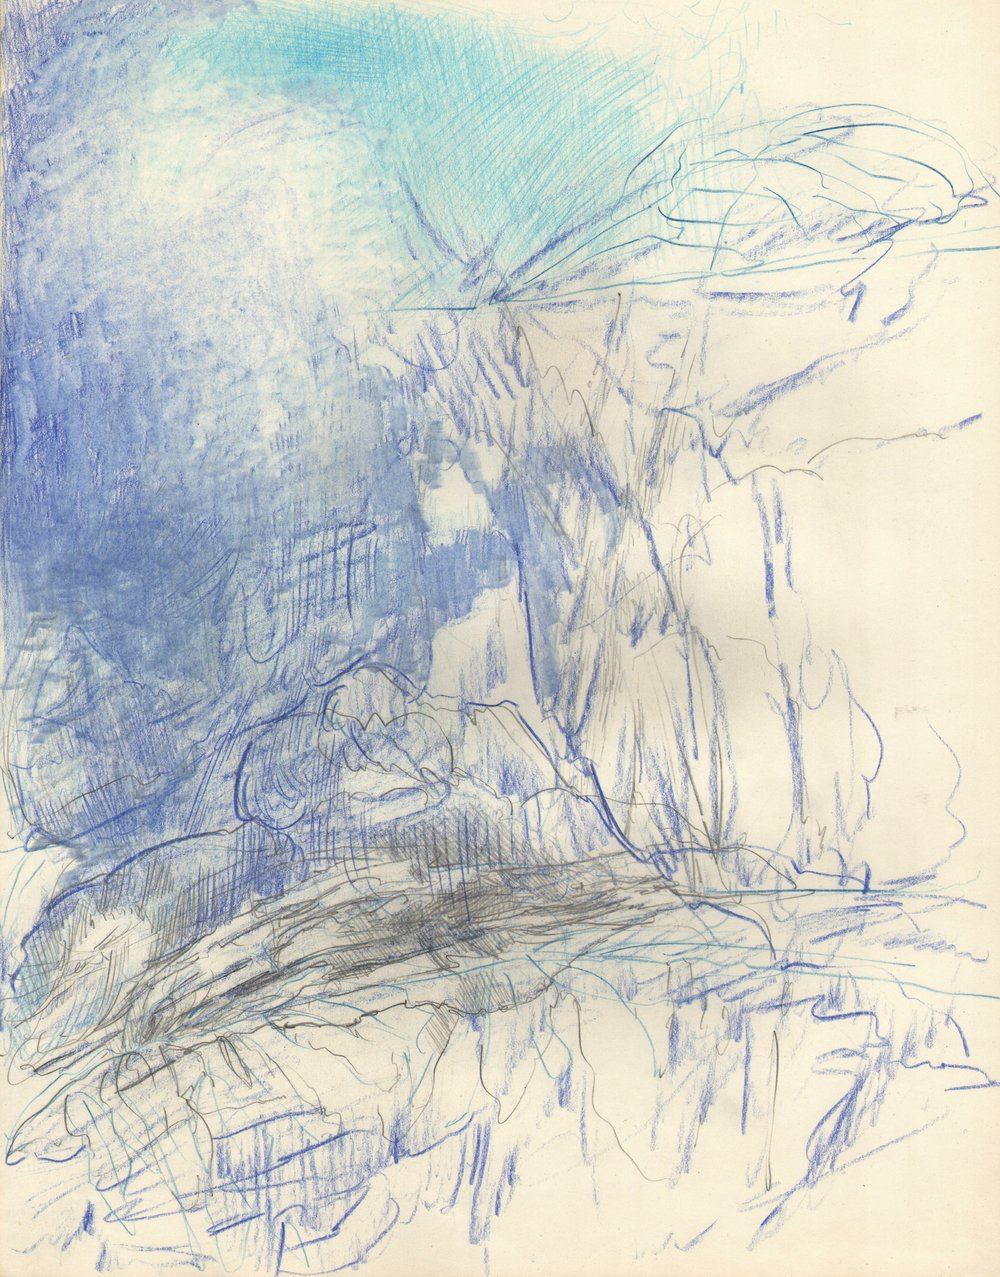 Blue Light Descending, 2015, 14 x 11 inches, pencil on paper